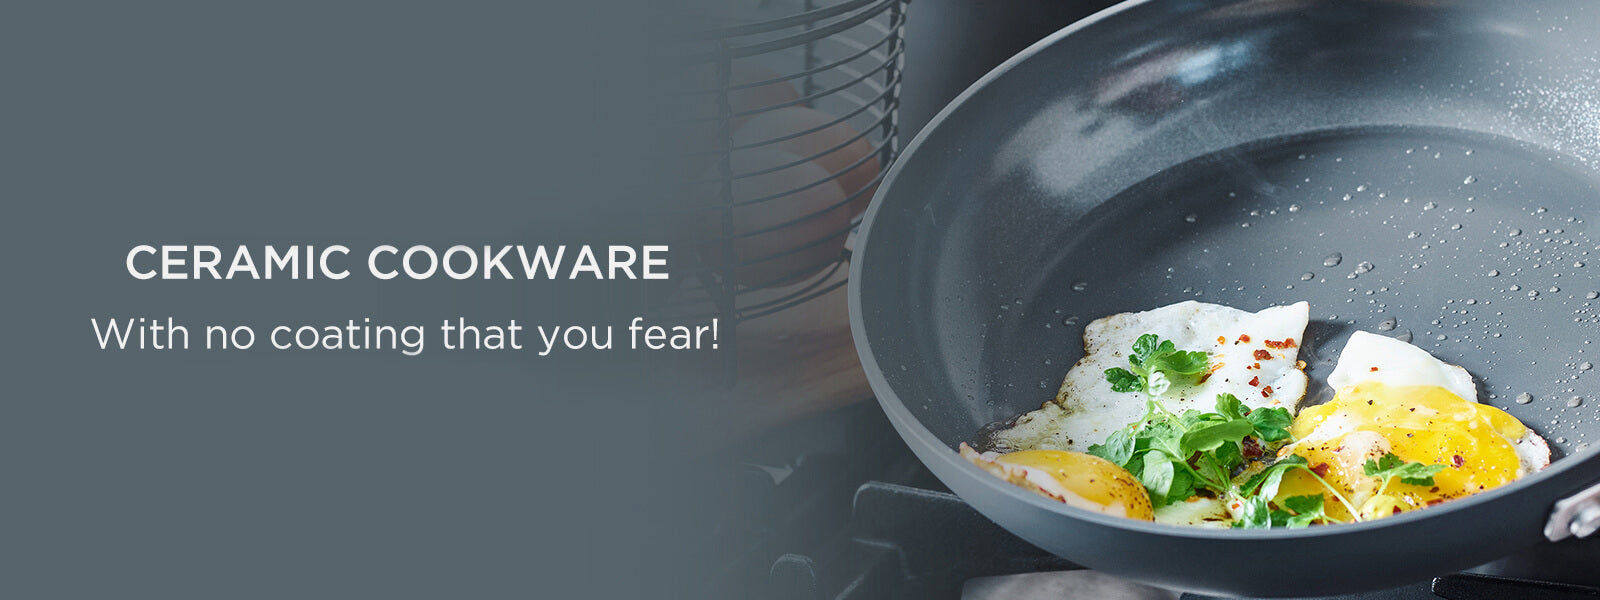 Does Ceramic Cookware have non-stick coating? Clearing your confusion!